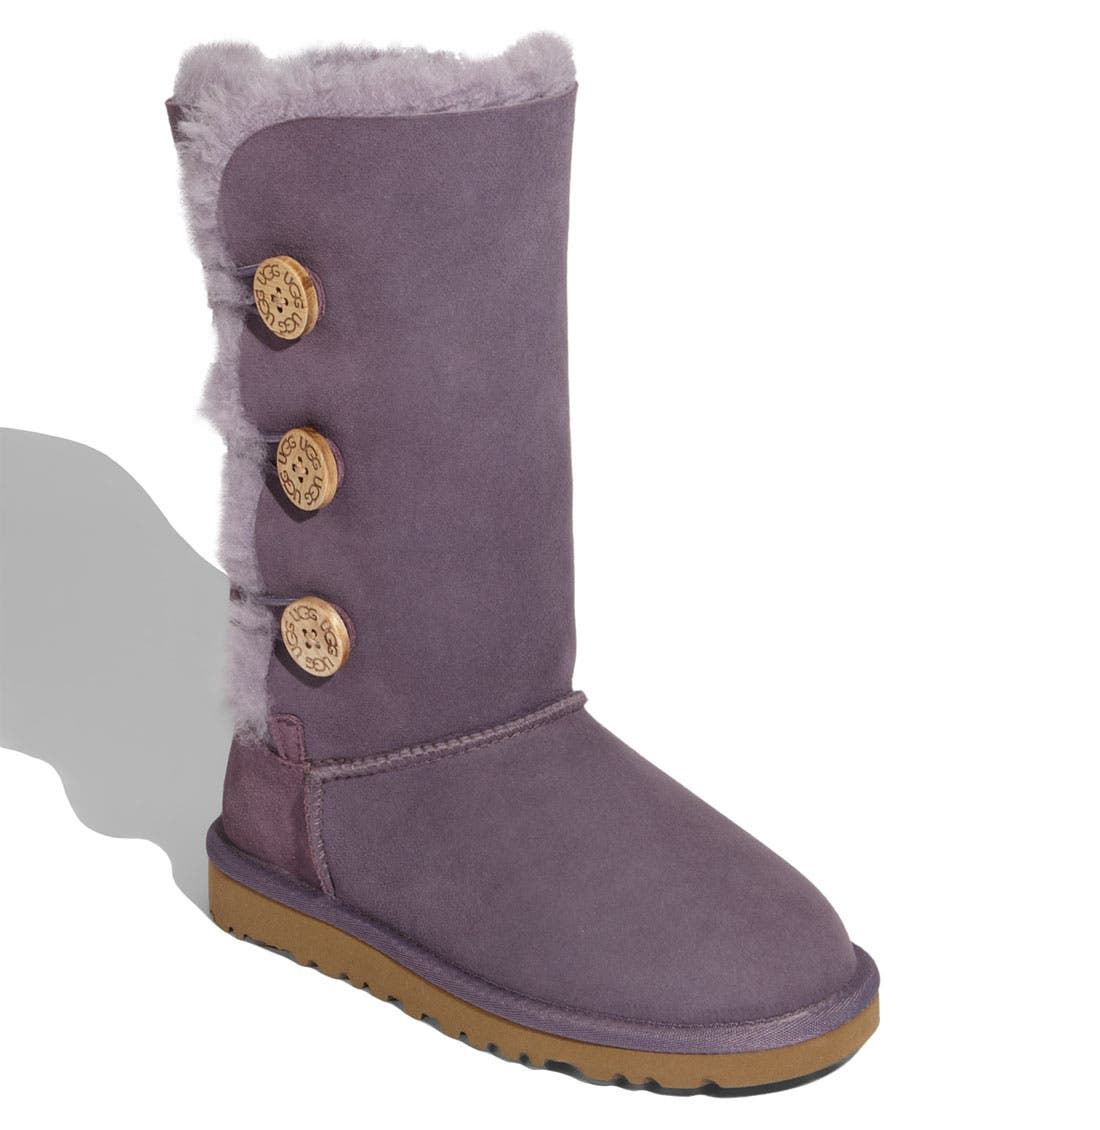 Alternate Image 1 Selected - UGG® 'Bailey Button Triplet' Boot (Little Kid & Big Kid)